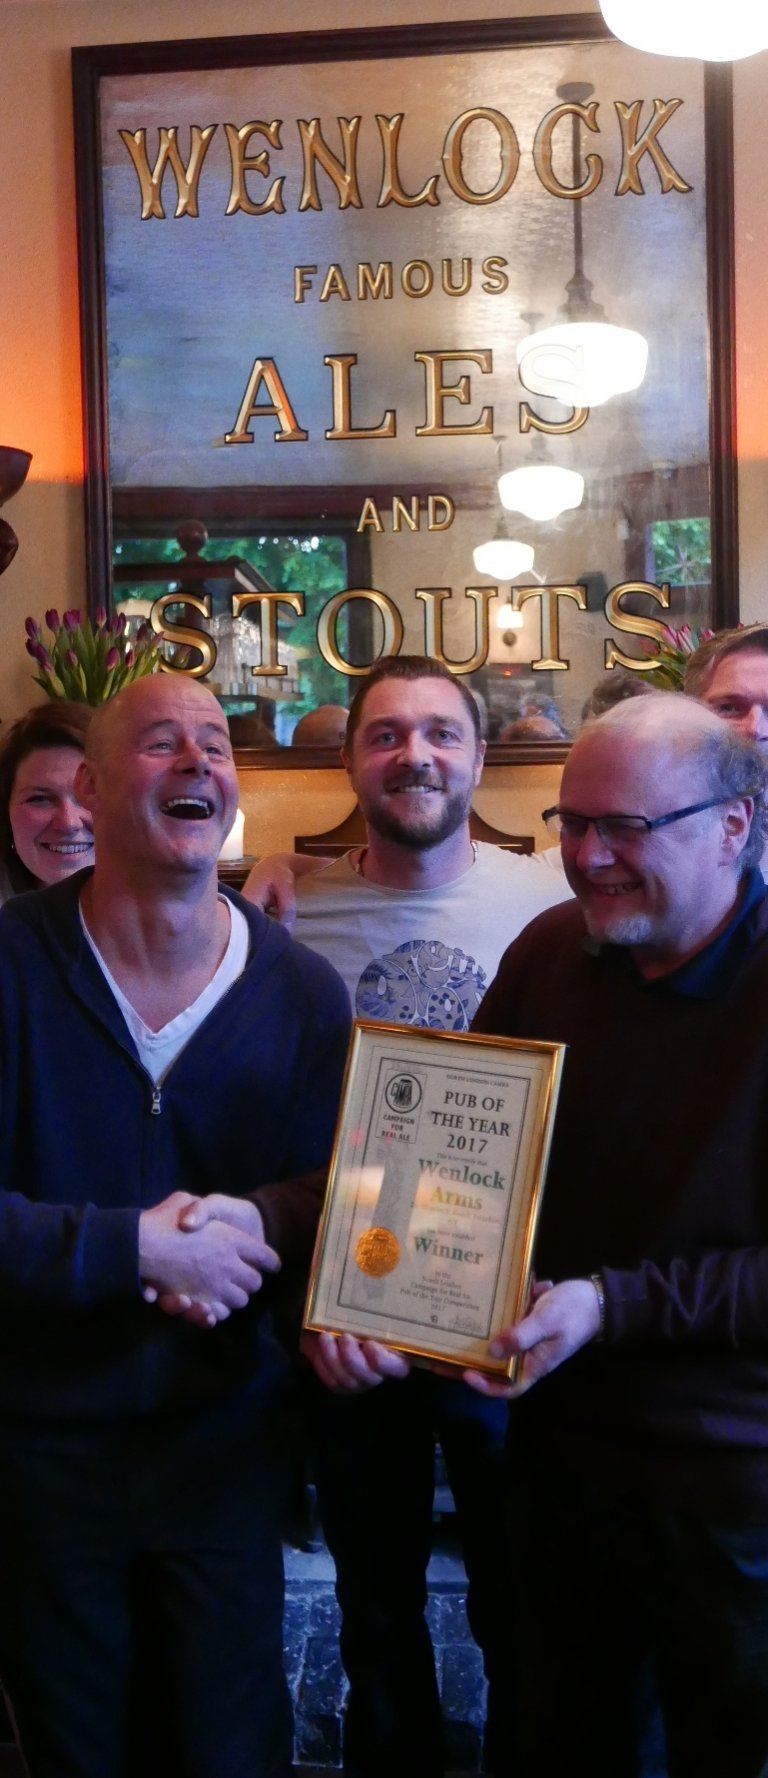 Marcus Grant (left) receives the 2017 Pub of the Year Award from Steve Barnes, past licensee and winner himself when he co-owned the pub.